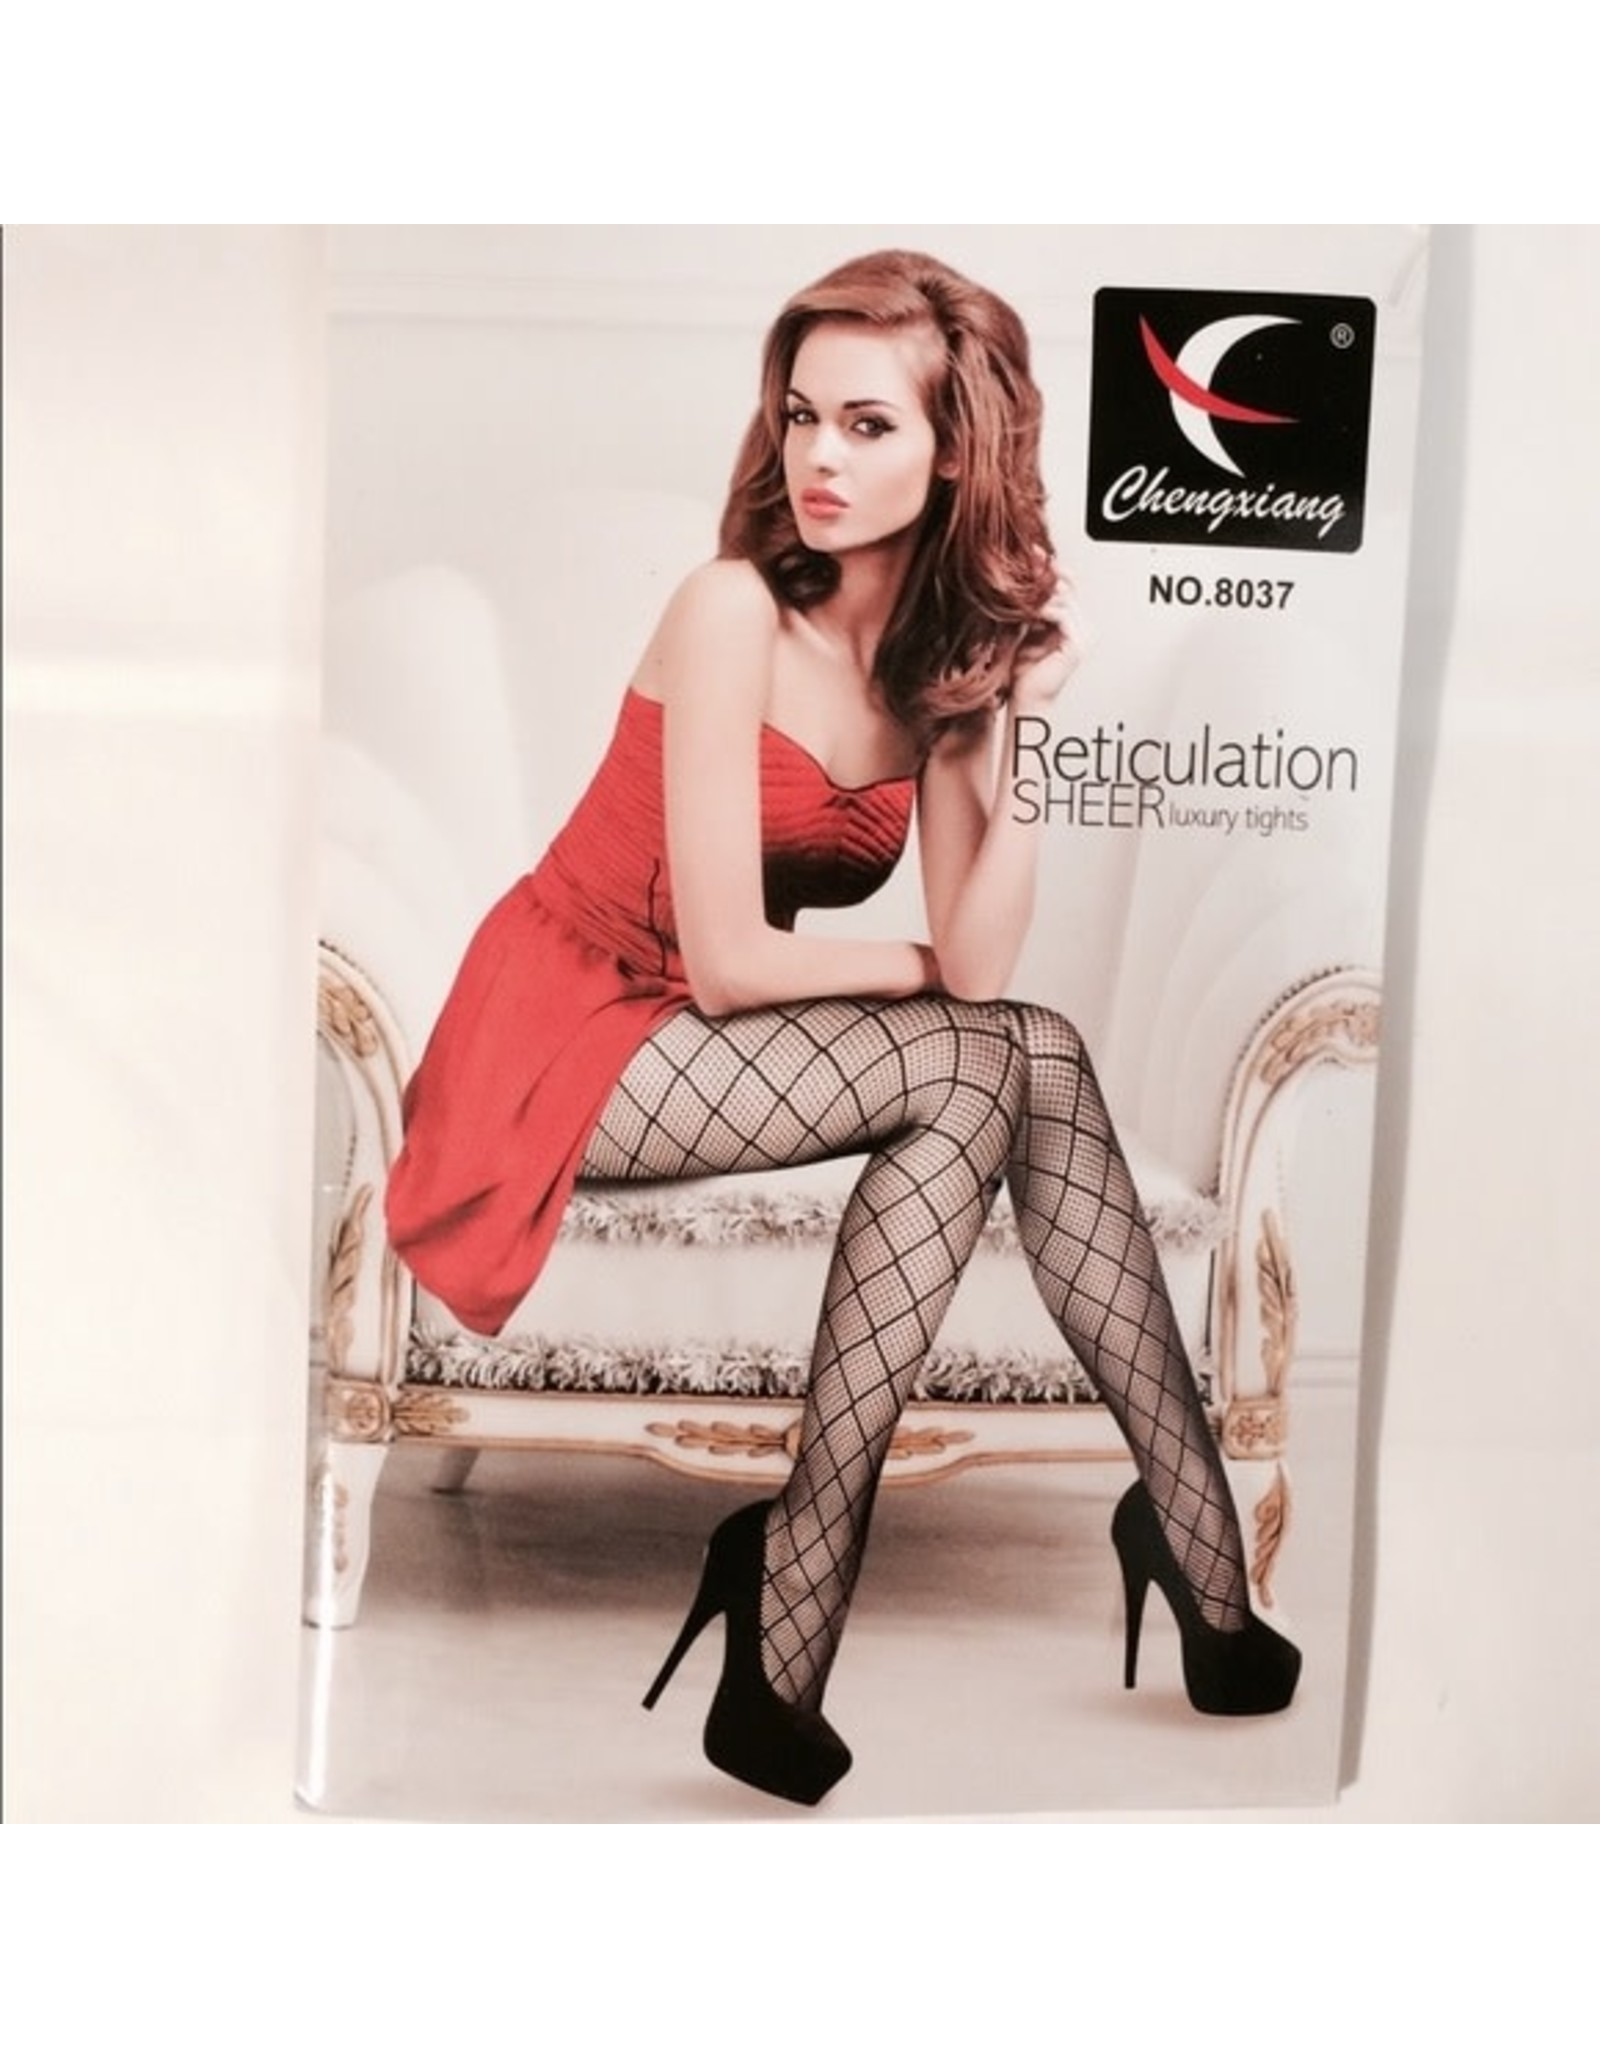 FENCE PANTYHOSE IN BLACK - ONE SIZE